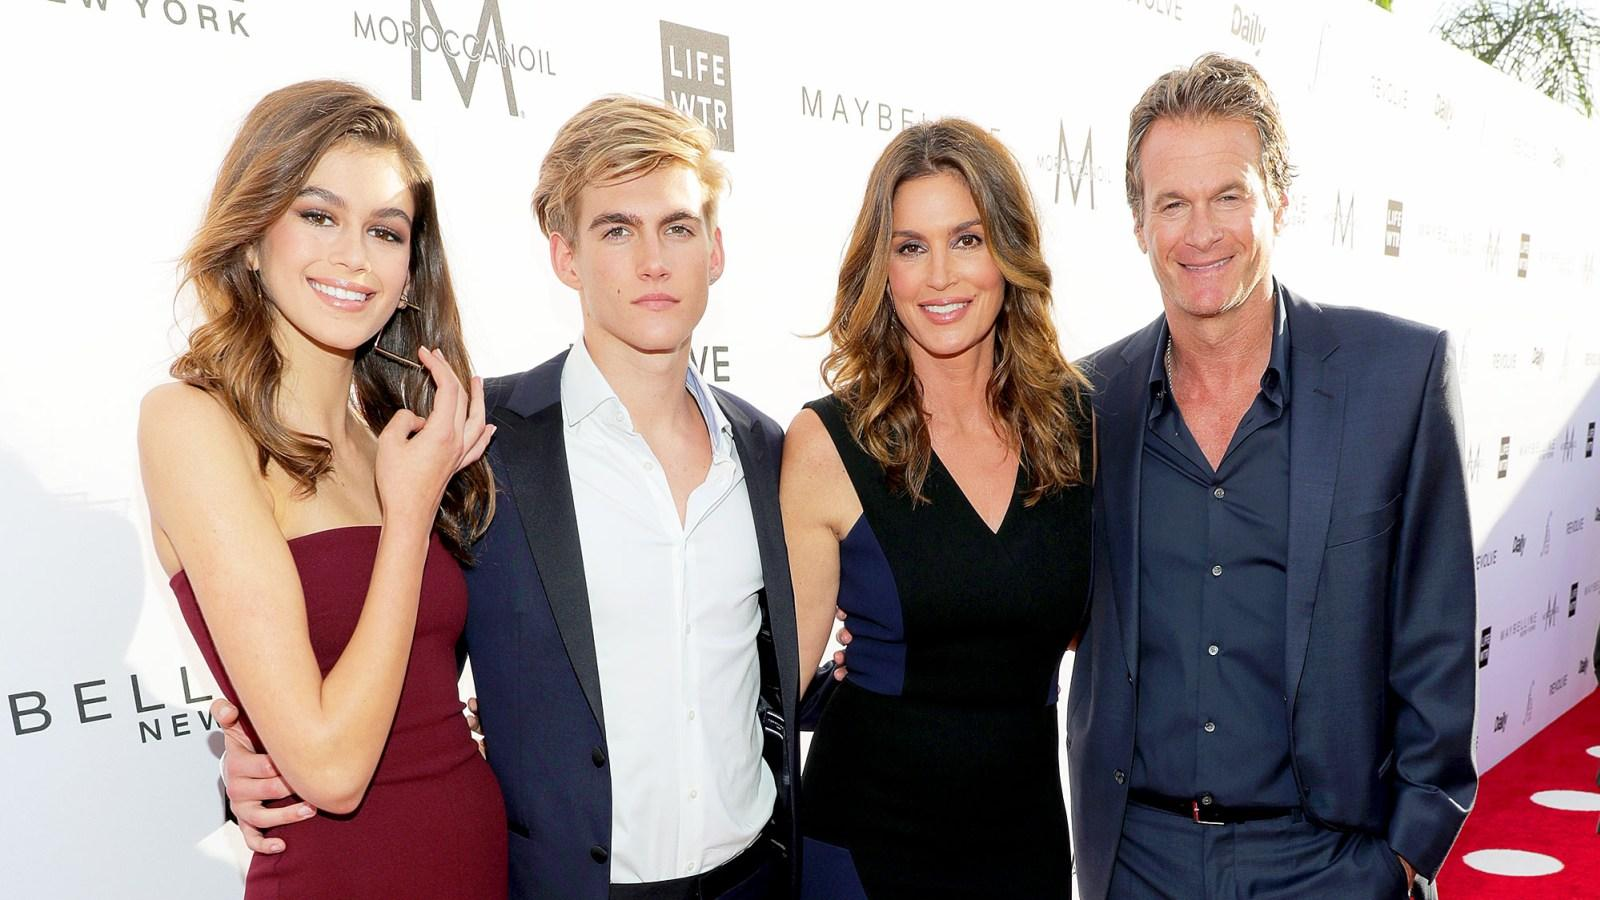 Cindy Crawford and Her Family Turned It Out For the Fashion L.A. Awards